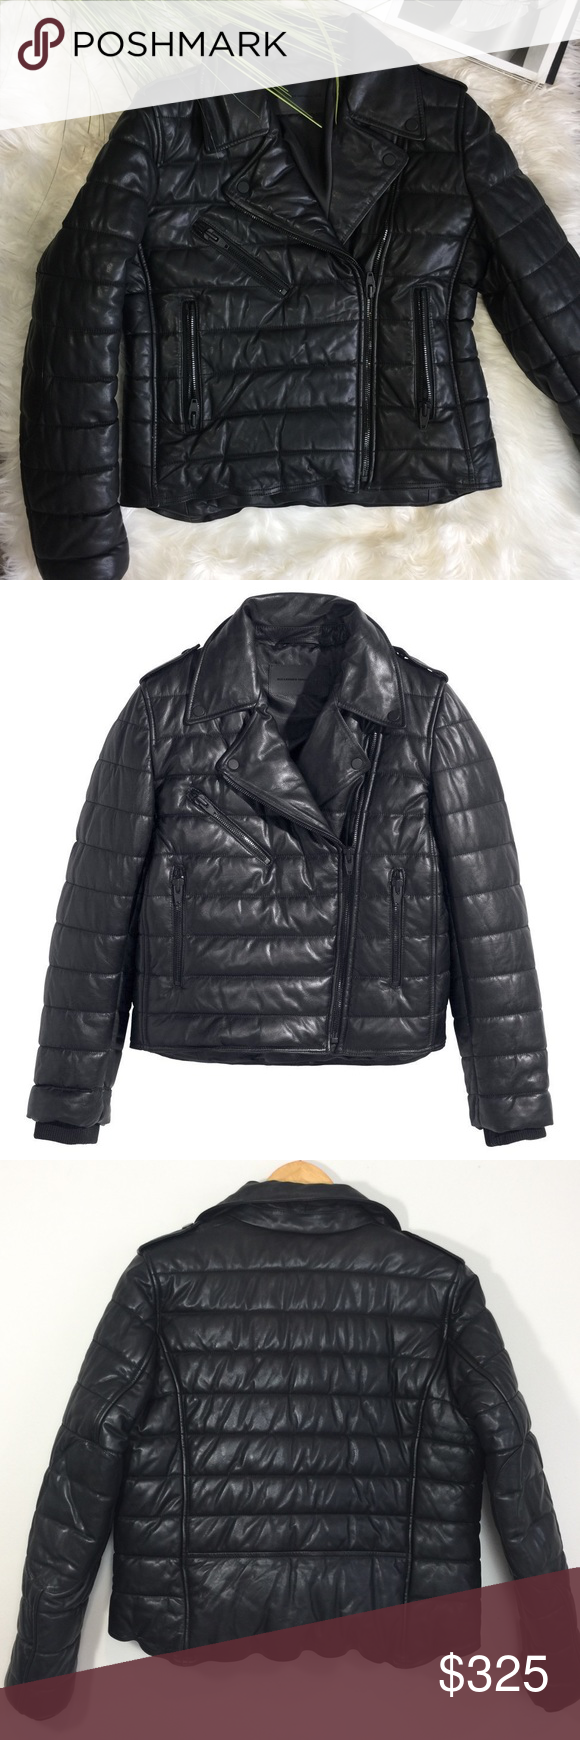 ffec56641 Alexander Wang x HM Leather Moto Puffer Jacket Chic and edgy black ...